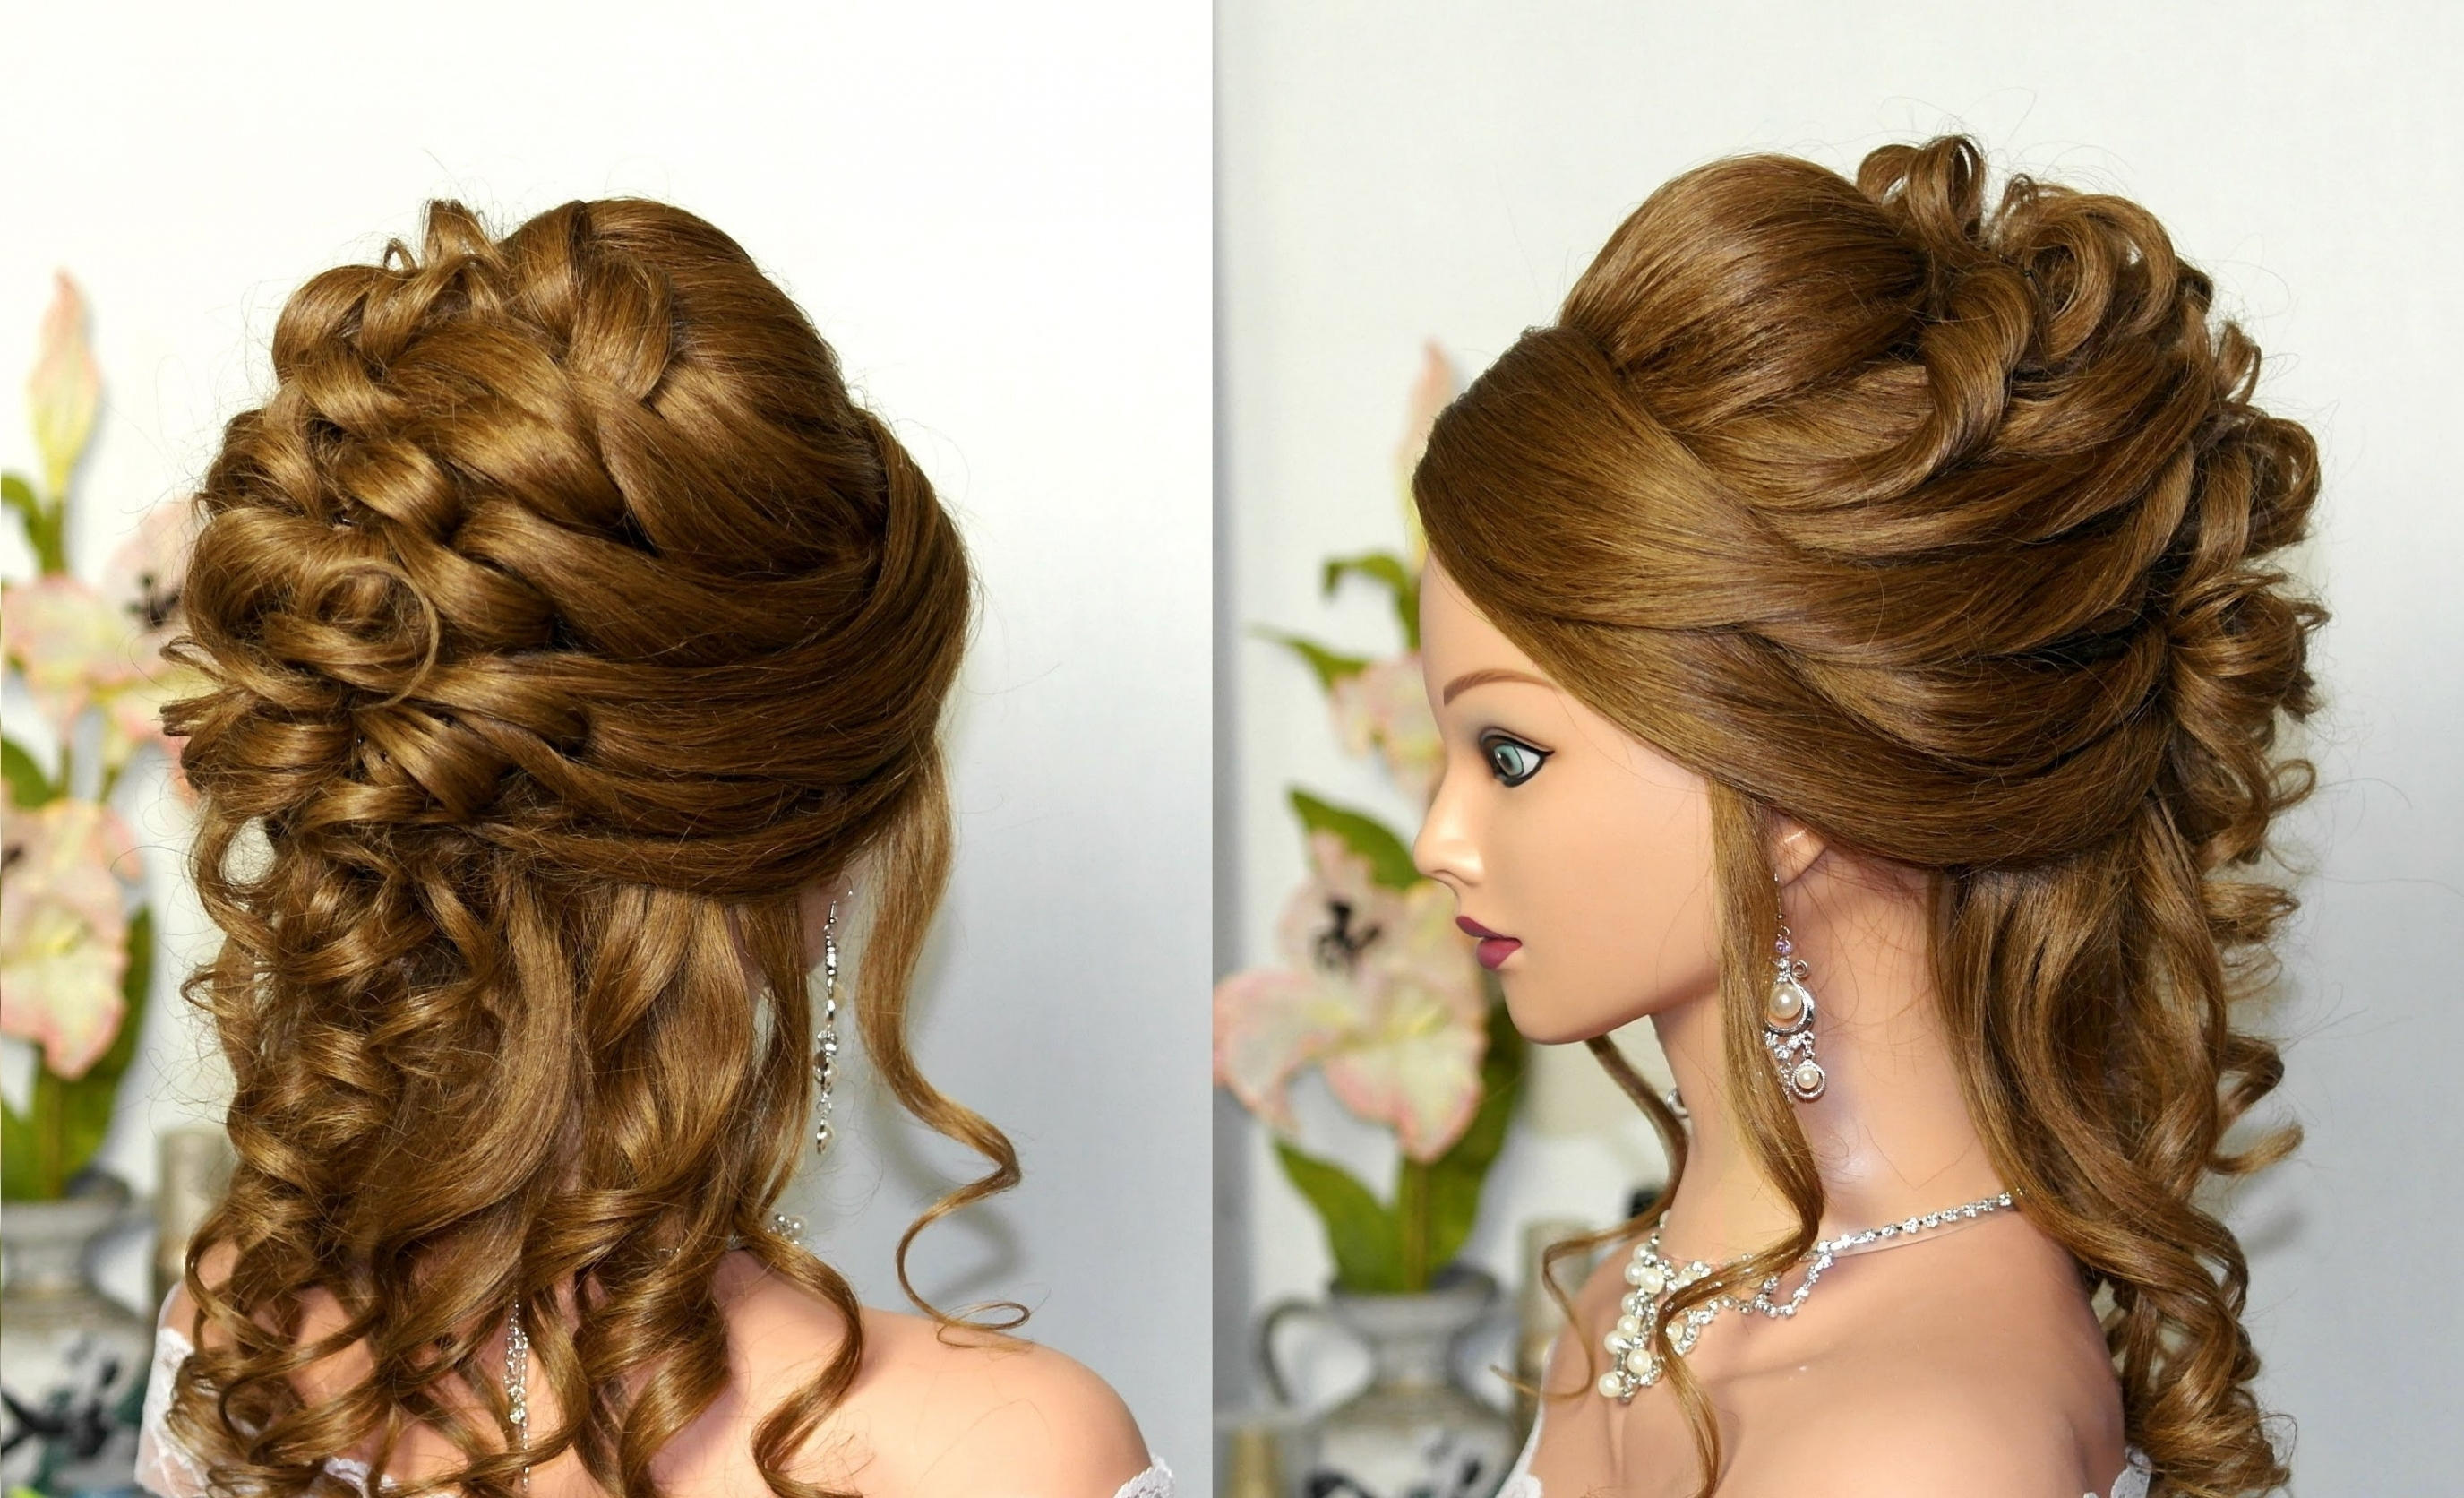 Hair Updo Hairstyles Curly Wedding Prom Hairstyle For Long Hair With Regard To Hair Updo Hairstyles For Long Hair (View 8 of 15)